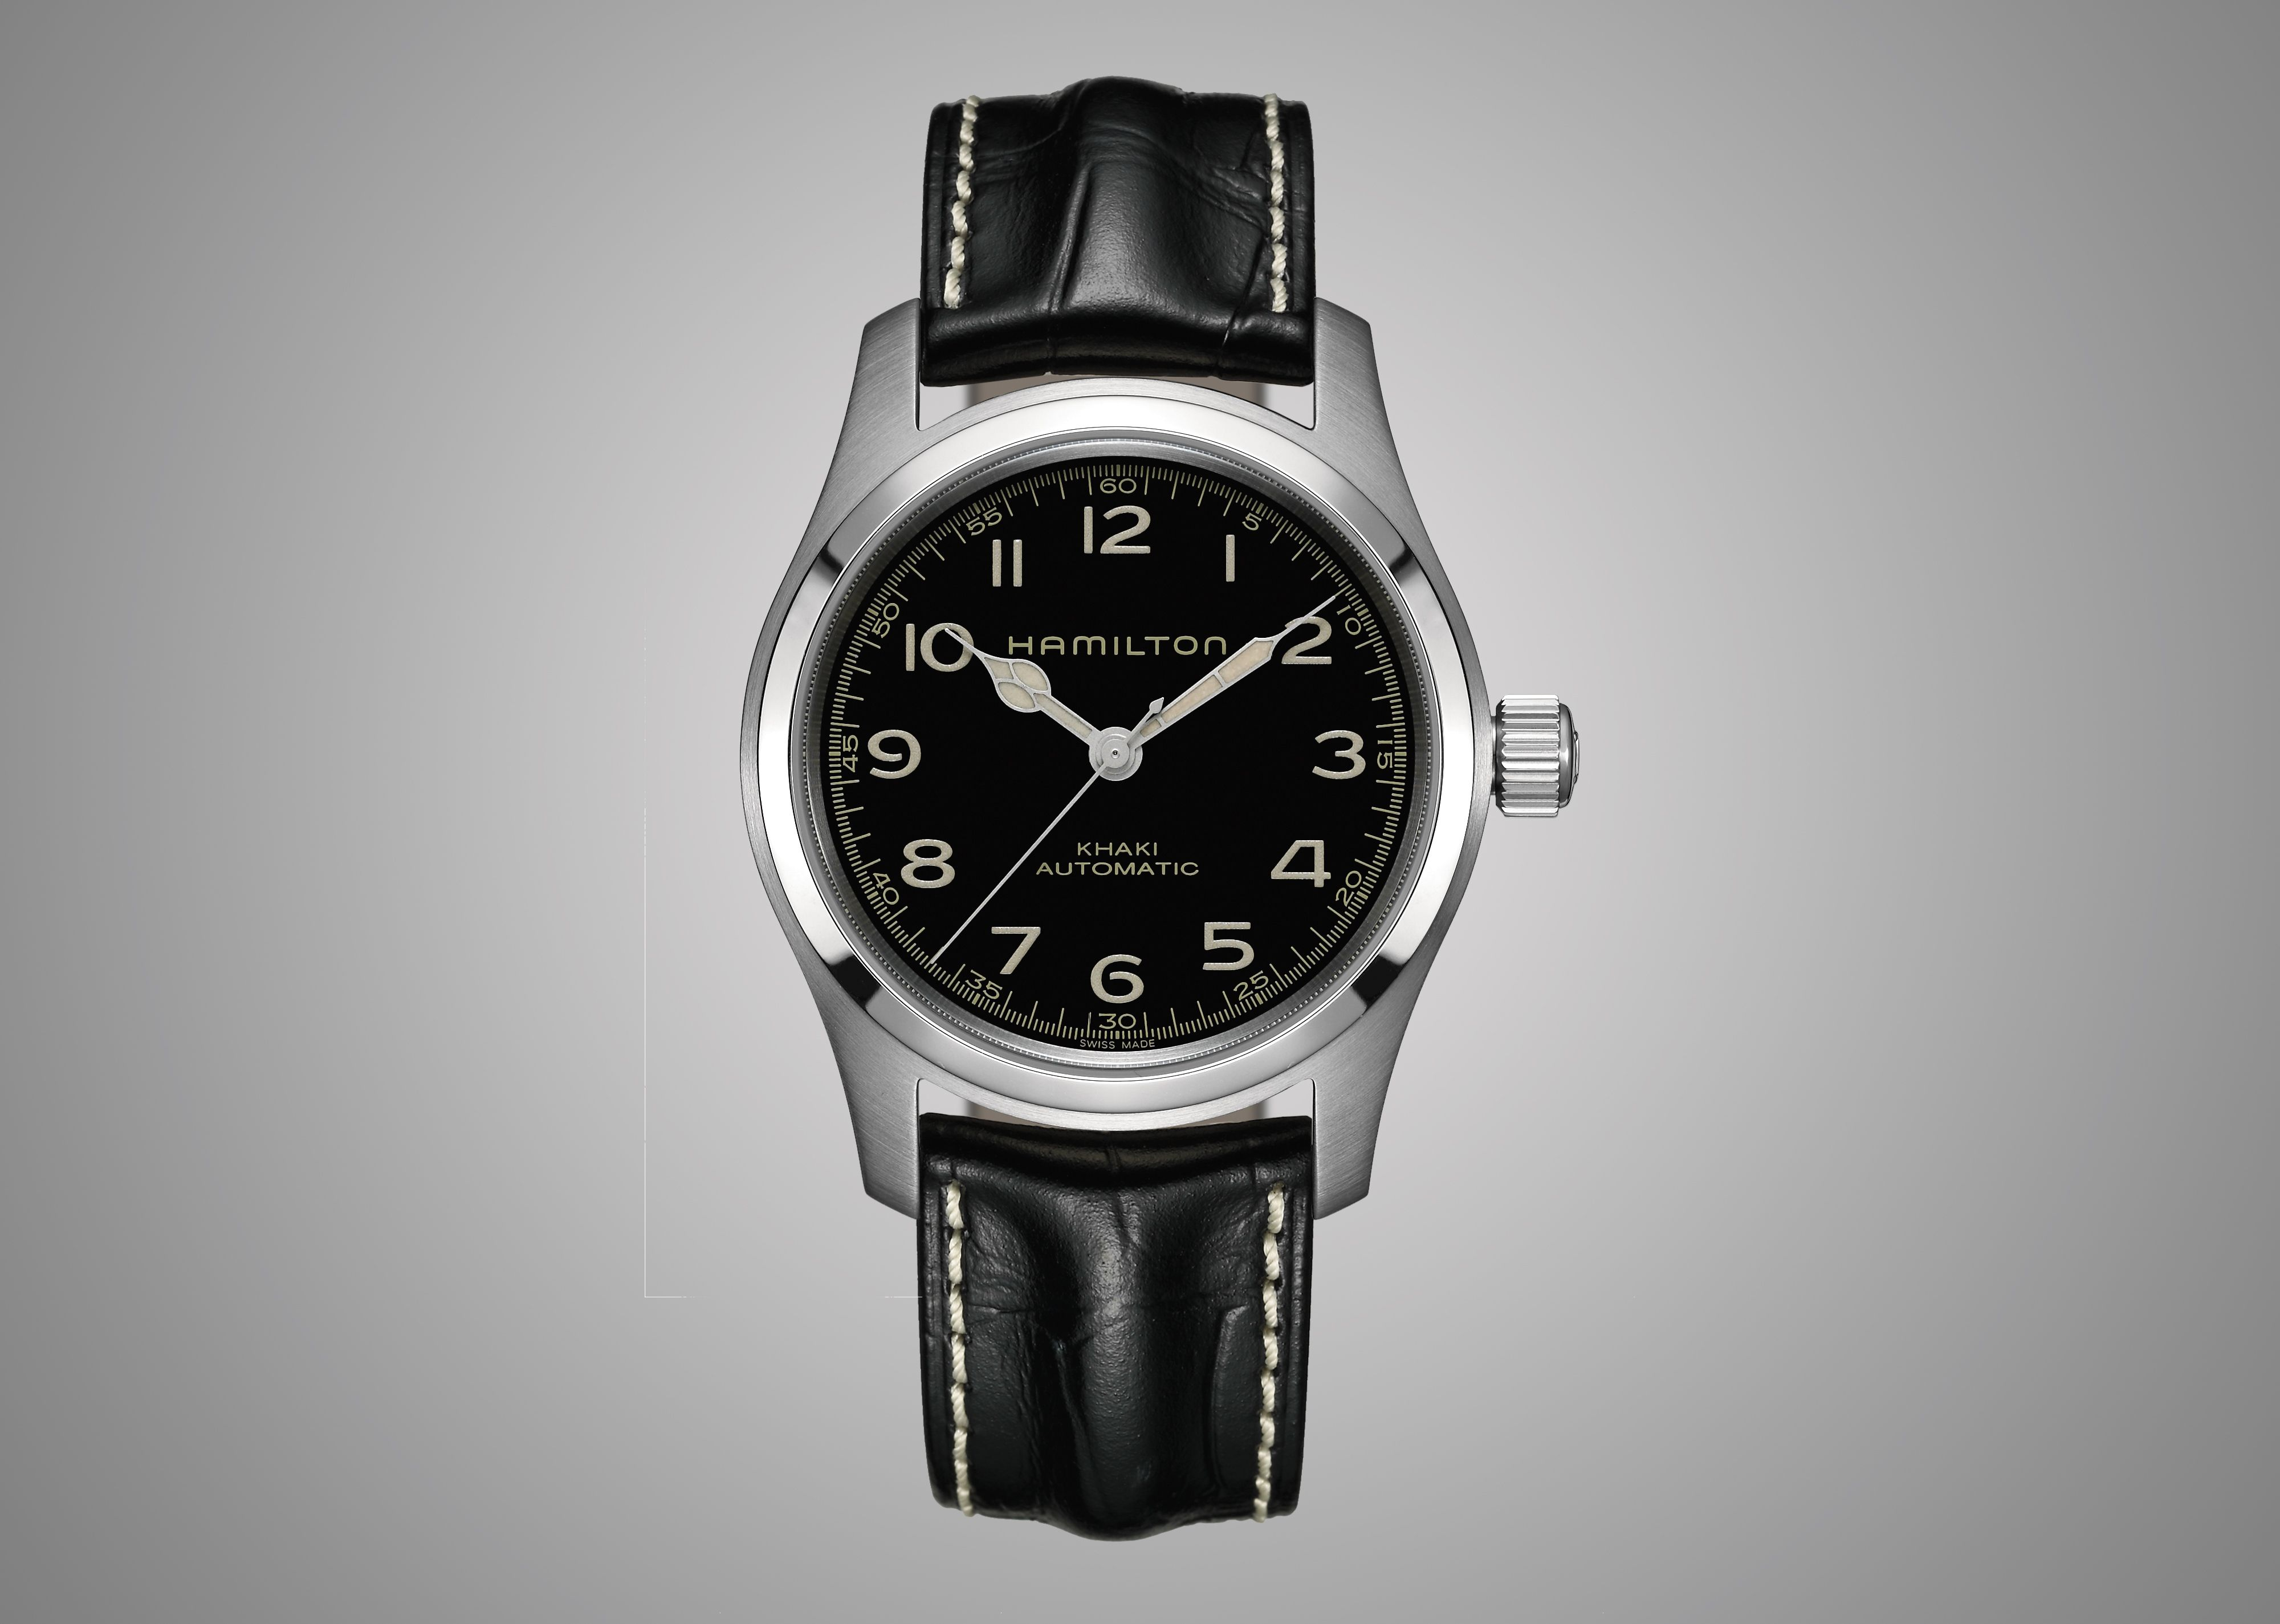 10fa8a8ff Mackenzie Foy as Murph (Murphy) Cooper... HAMILTON Khaki Automatic Special  Edition Watch in